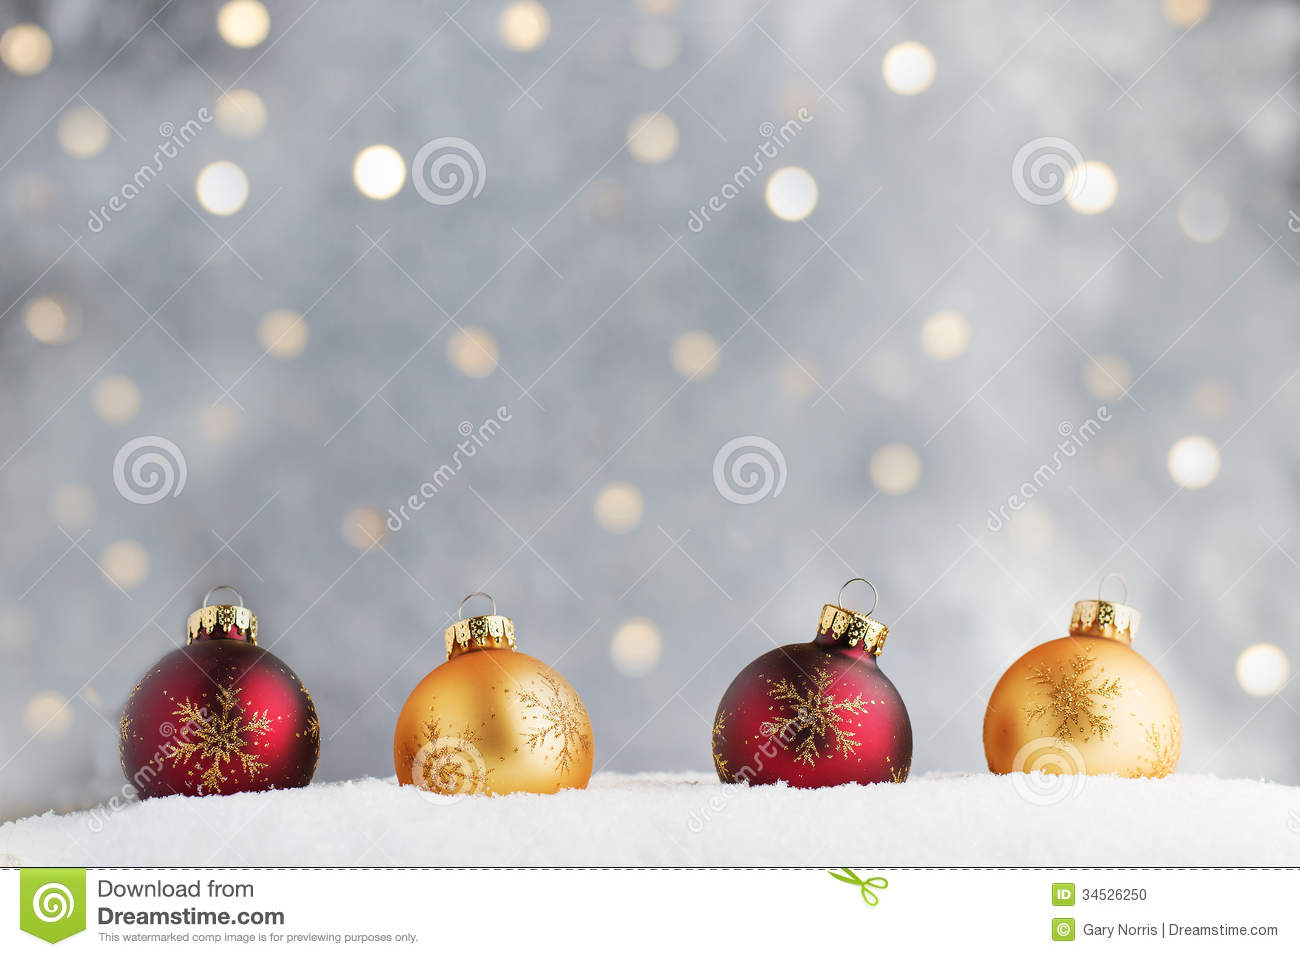 burgundy and gold holiday wallpaper - photo #30